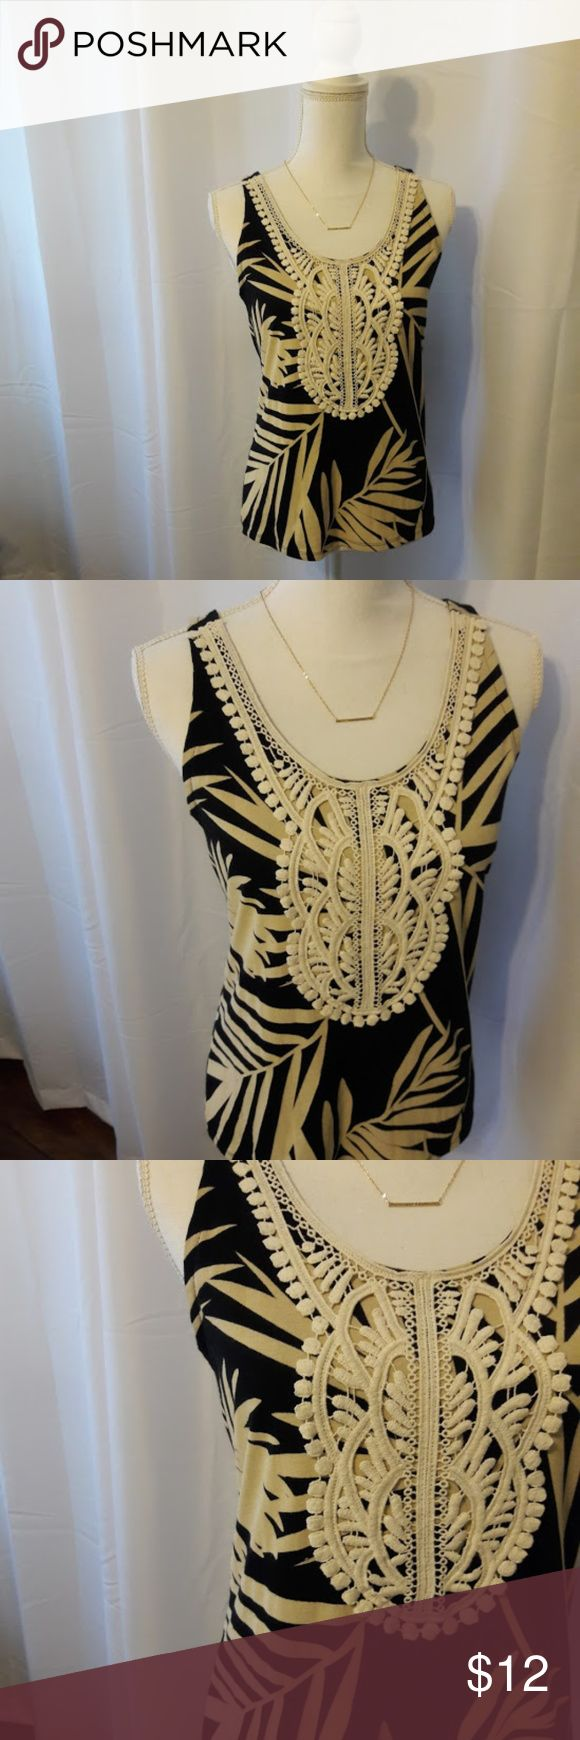 Merona Crochet  Tank Top Adorable Merona black and tan tropical print tank top with a cream colored crochet detailing around the neckline. Size XS. Used item: inspected for quality and wear. Bundle up! Offers always welcome :) Merona Tops